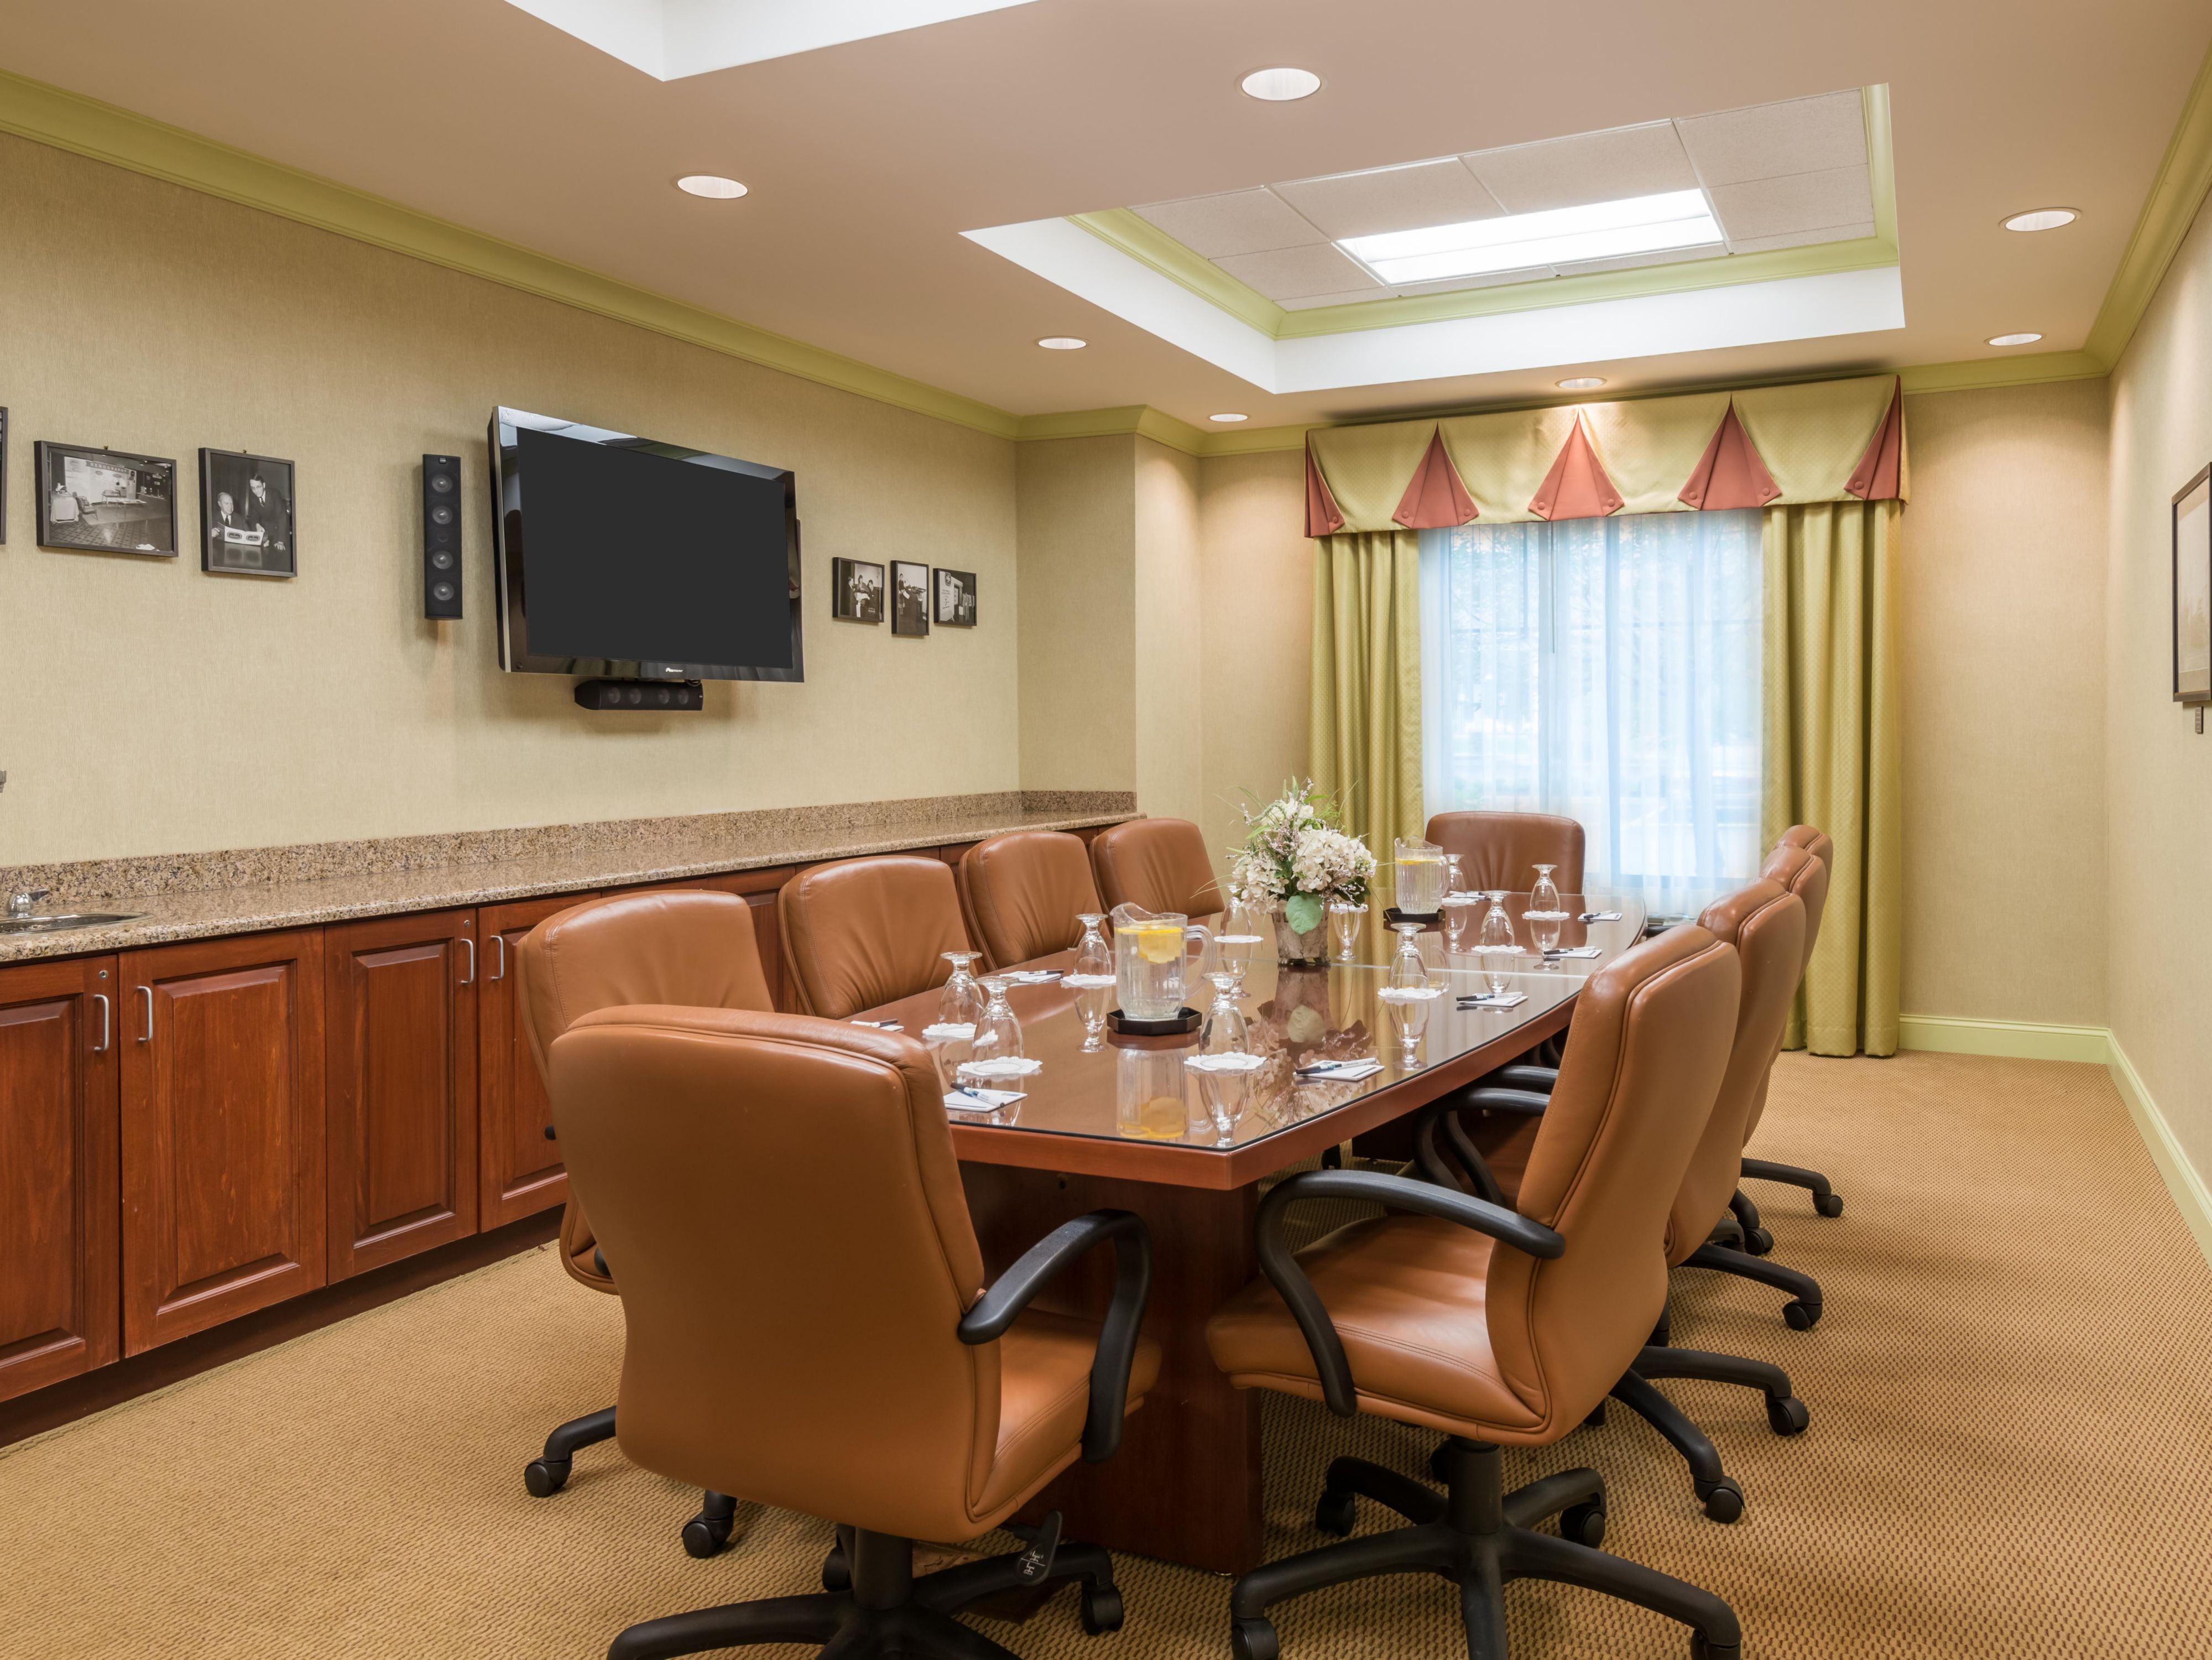 Host small meetings in the boardroom